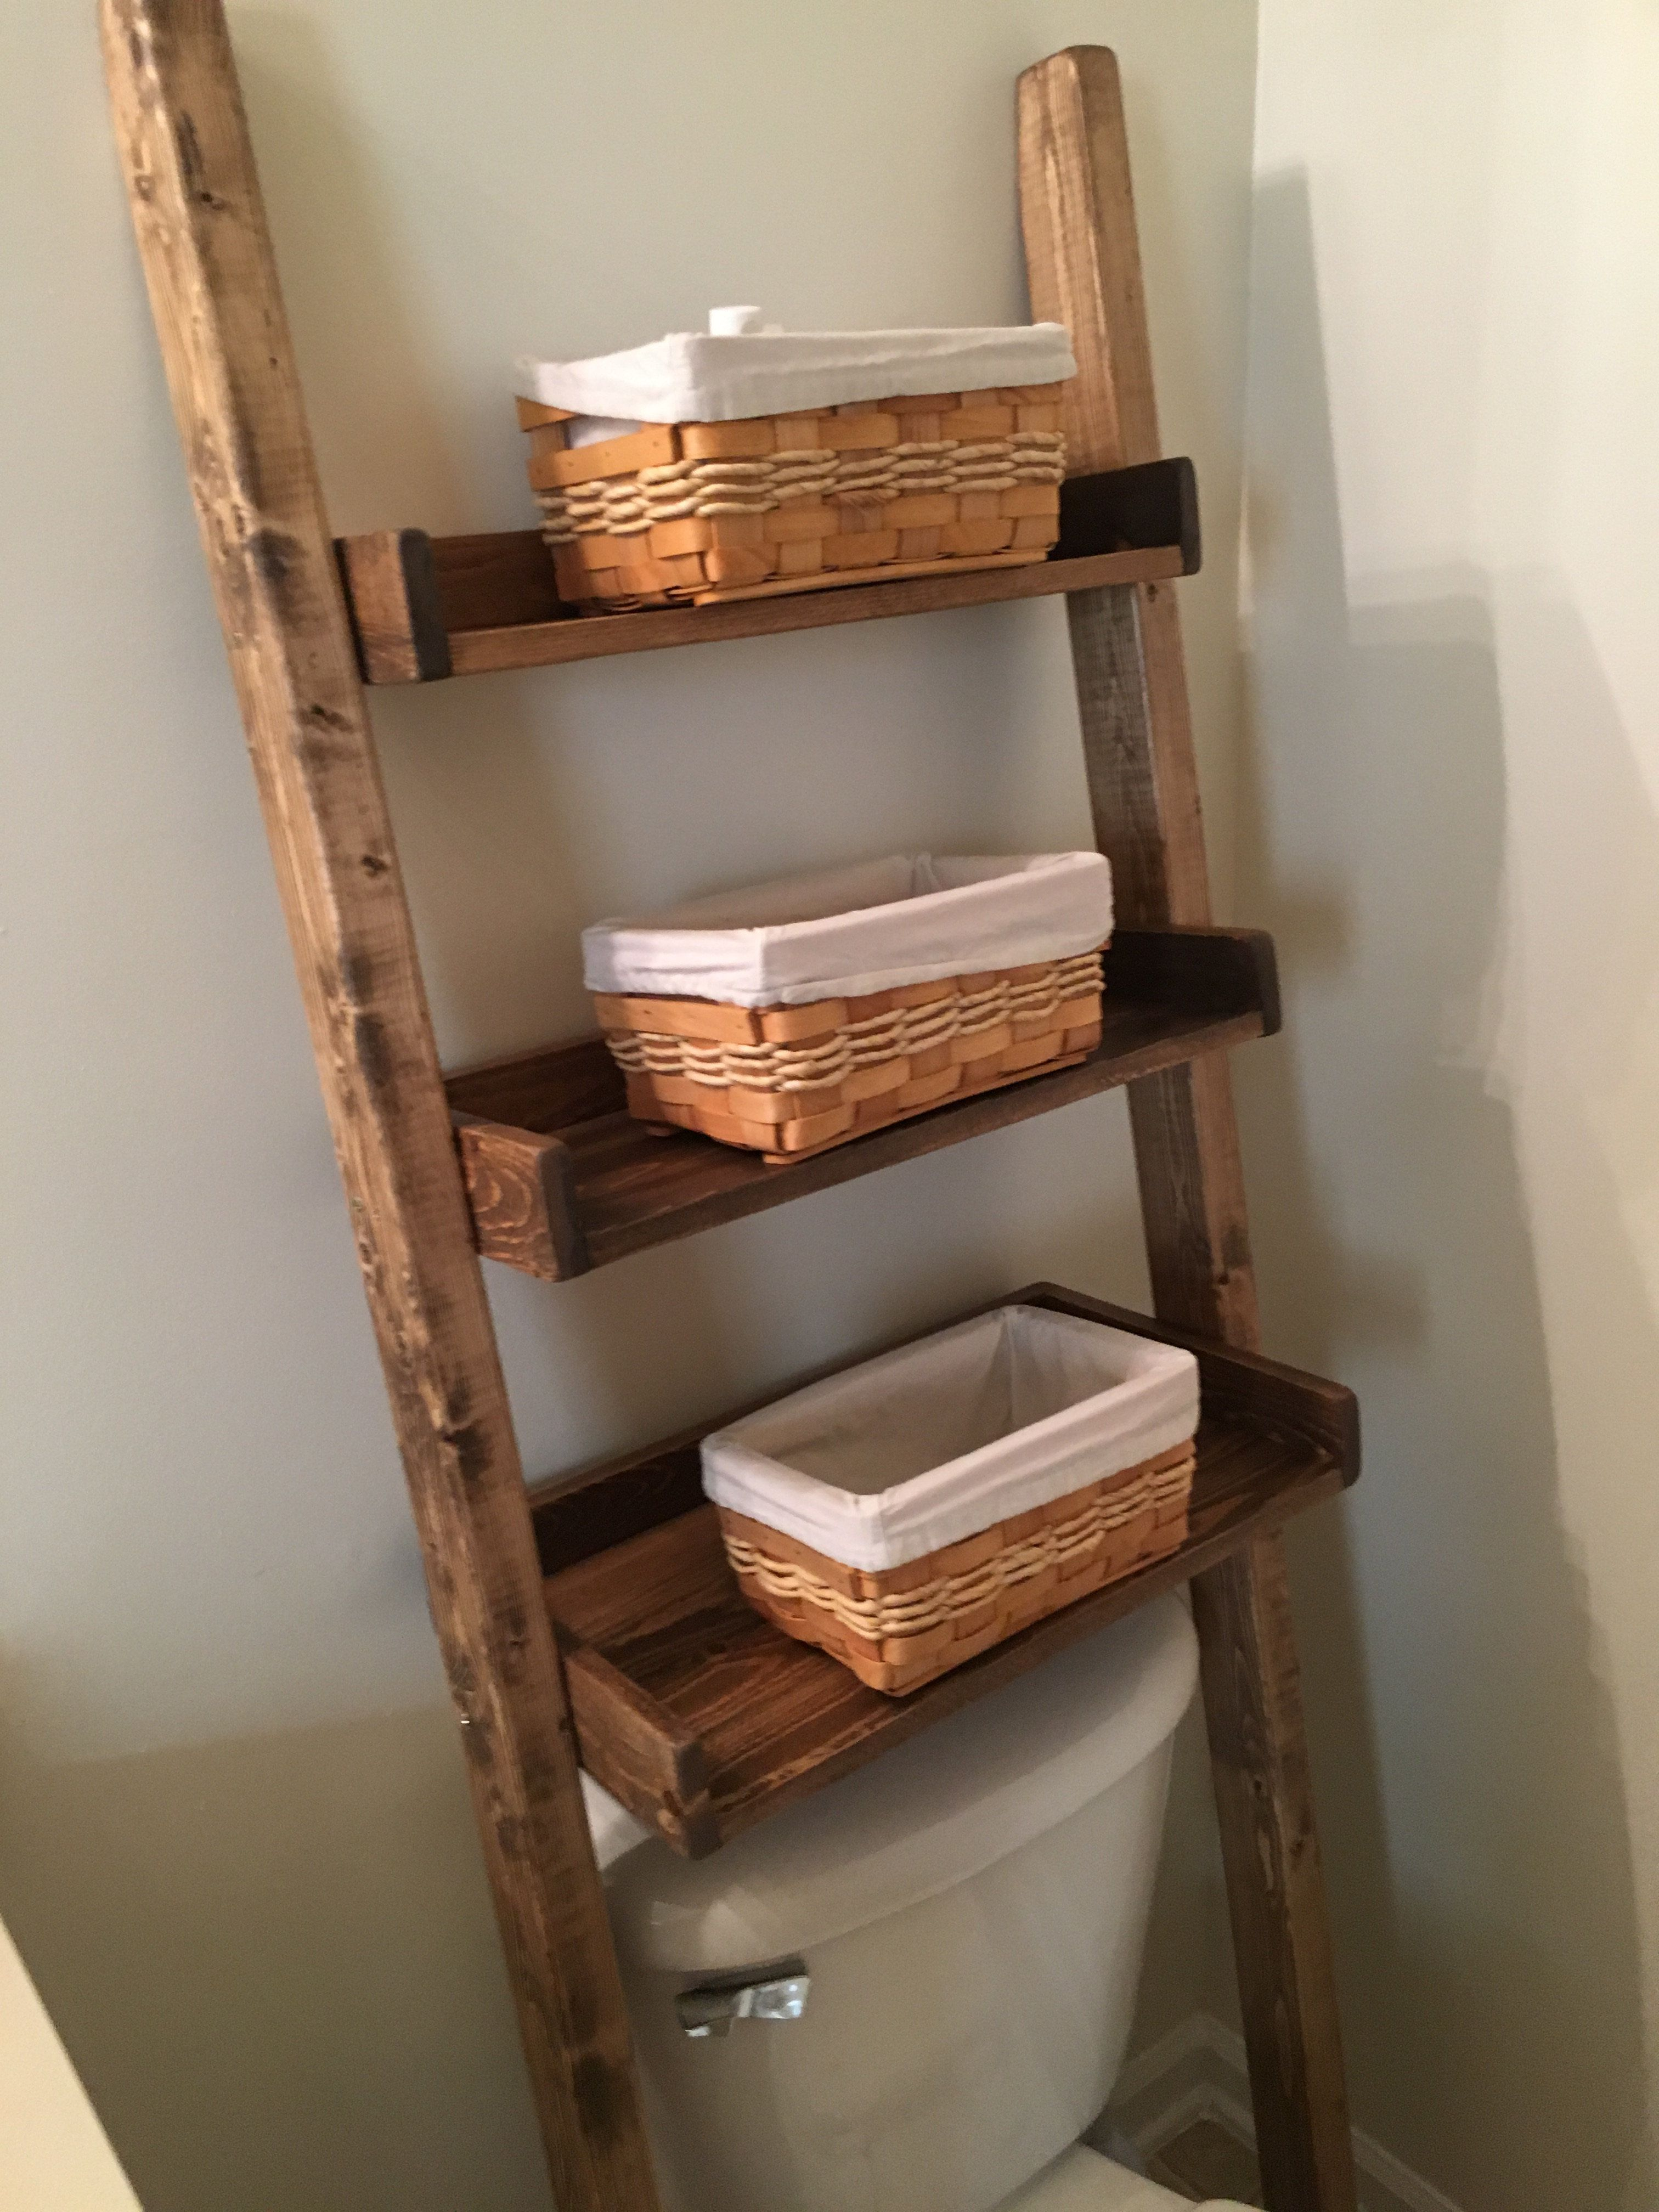 Another Customer Photo She Did A Great Job Putting It Together This One Is In Special Walnut Stain Toilet Storage Tiny Bathroom Storage Shelves Over Toilet